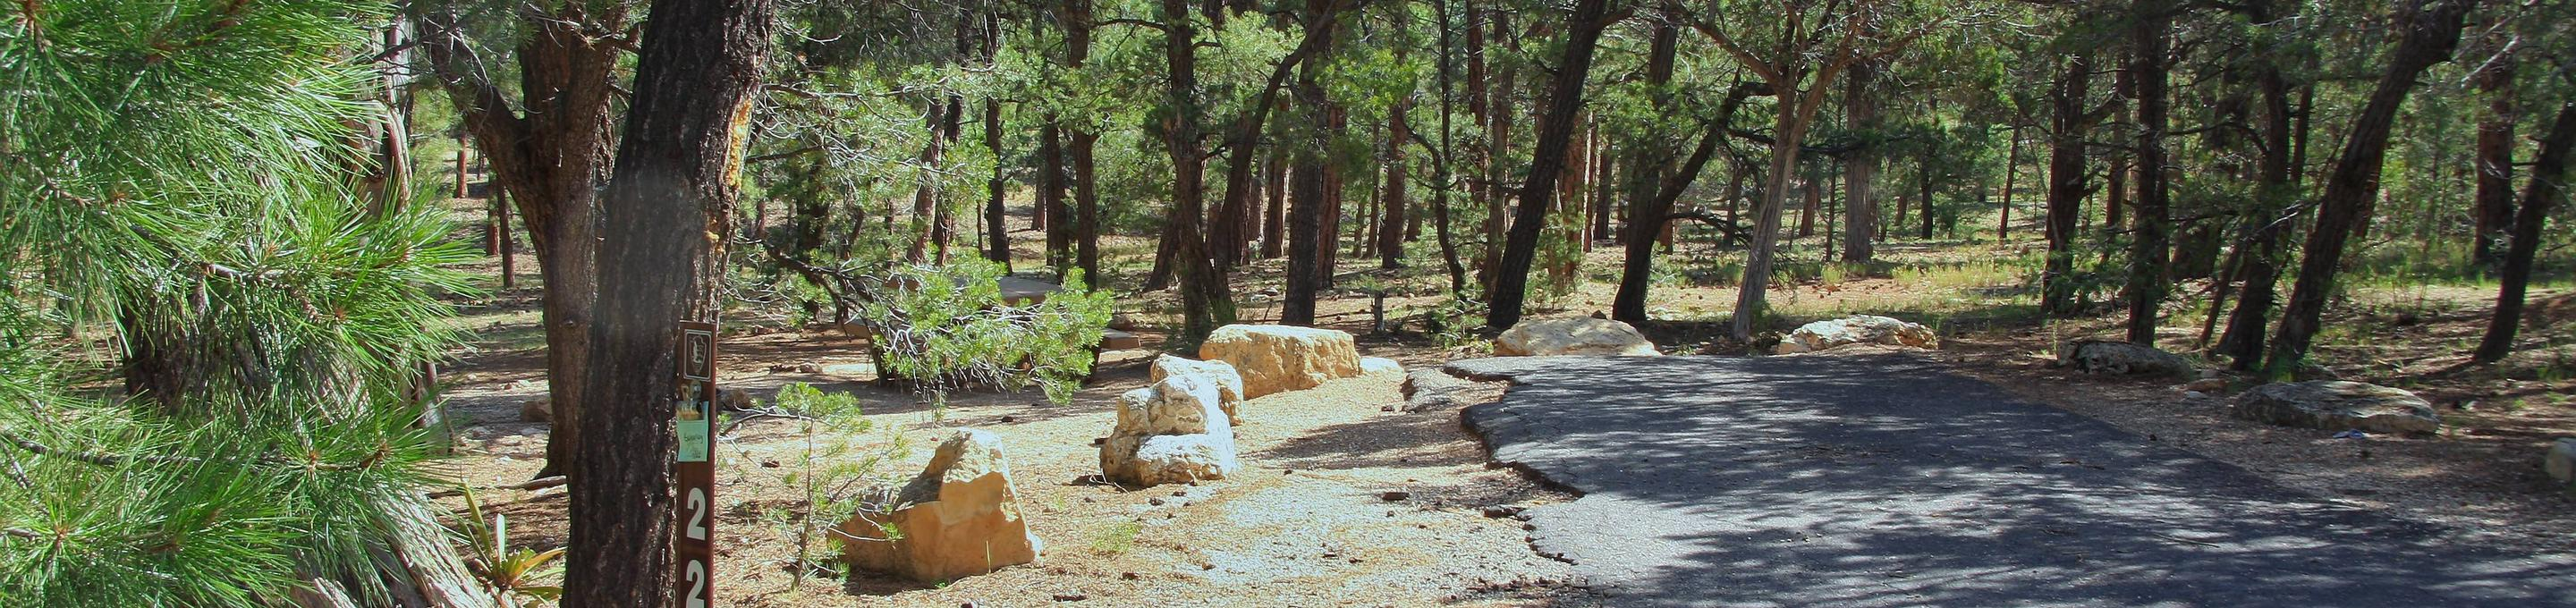 Picnic table, fire pit, and park spot, Mather CampgroundPicnic table, fire pit, and park spot for Oak Loop 227, Mather Campground